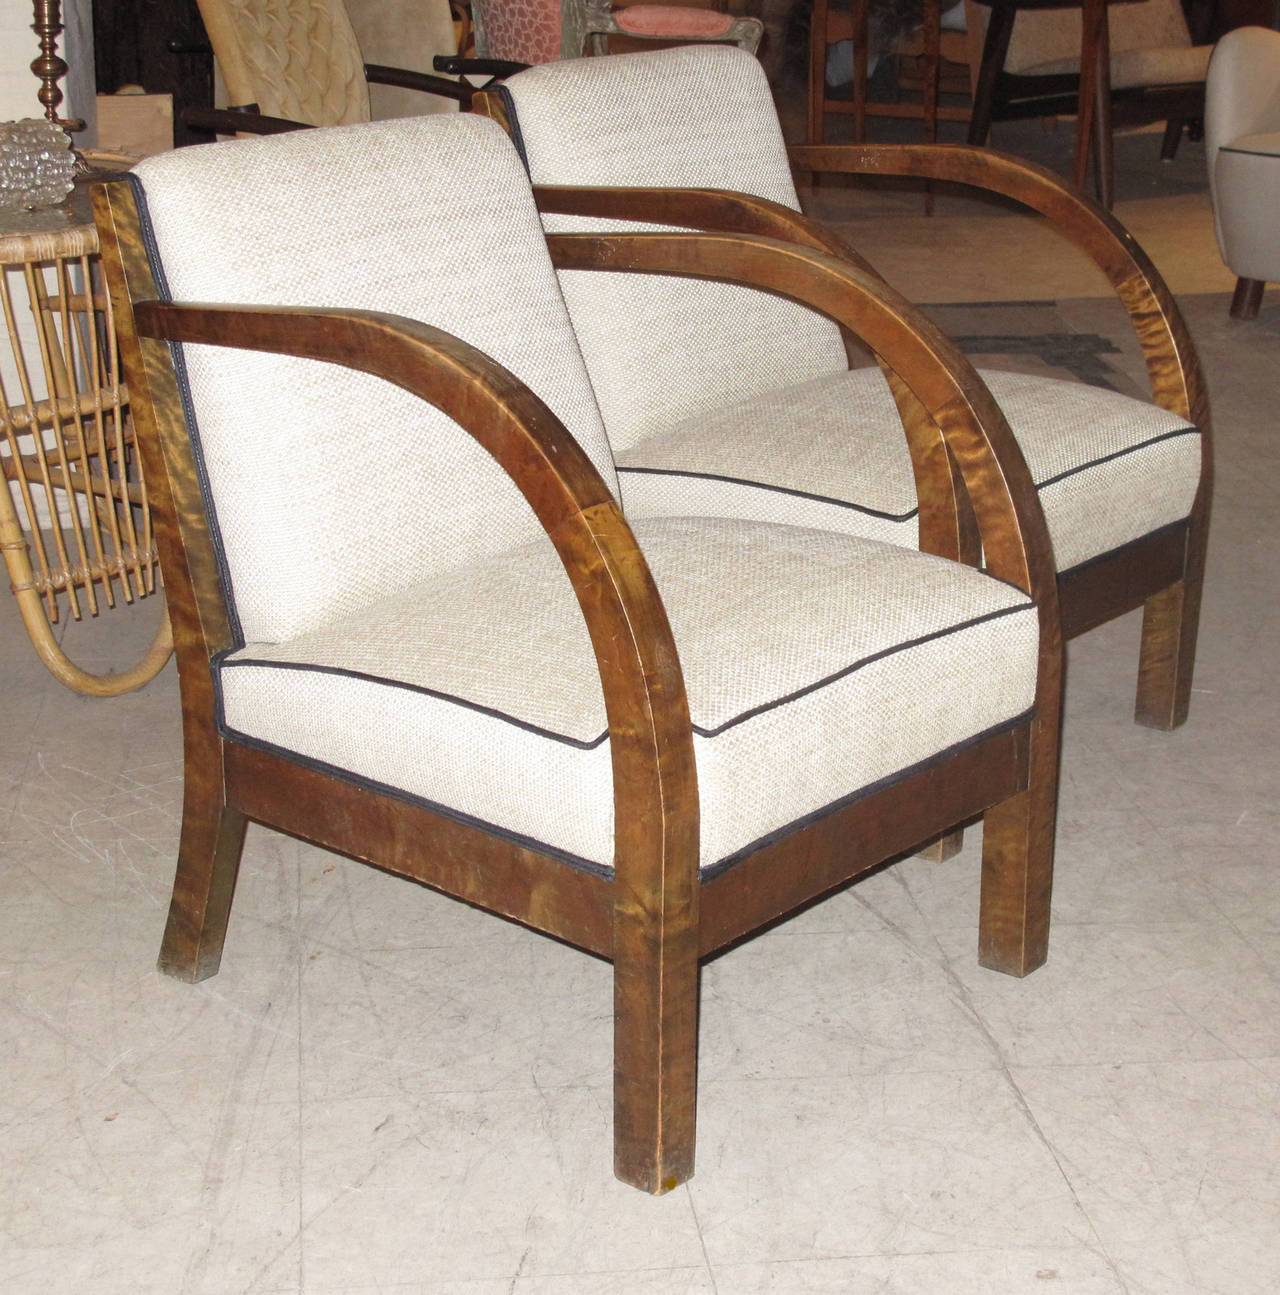 Wooden arm chair - Pair Of Danish 1930s Birch Wood Armchairs With Curved Arms 2